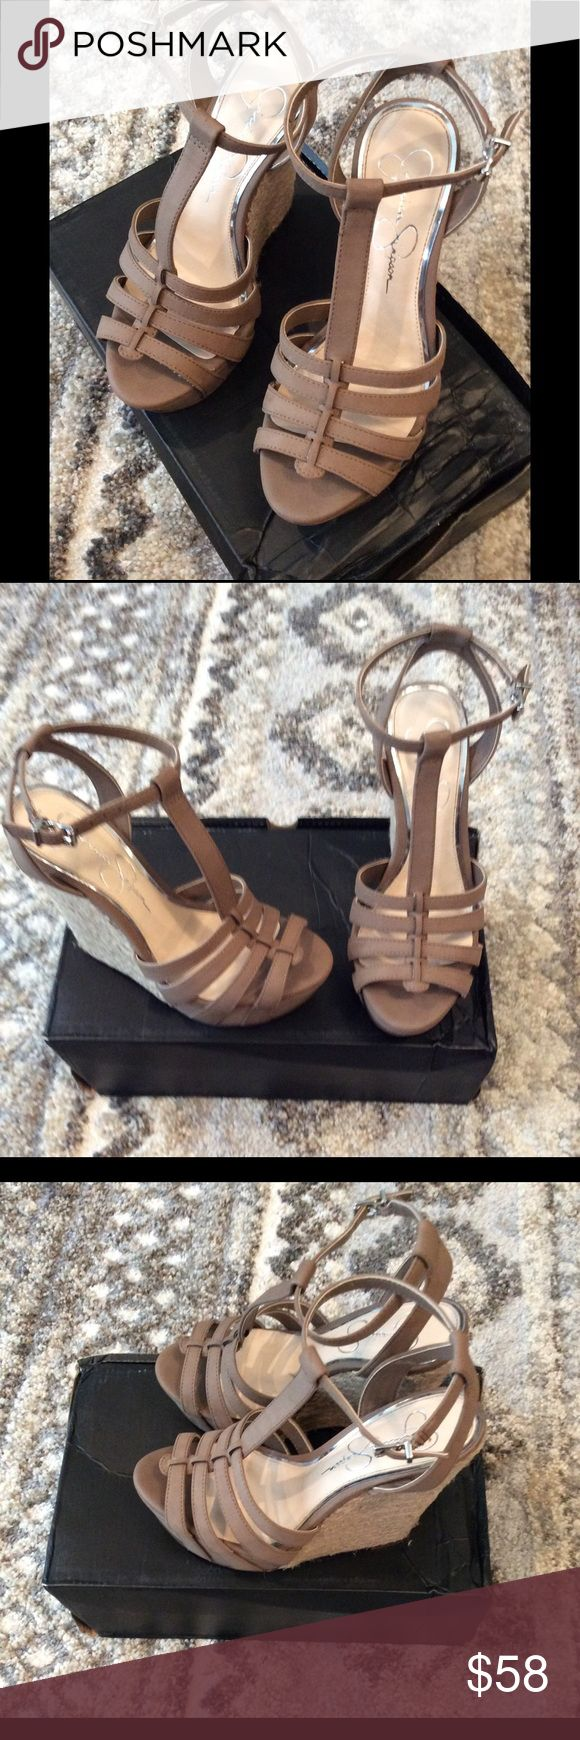 Jessica Simpson Wedge Shoes New! Excellent condition! Jessica Simpson Shoes Wedges